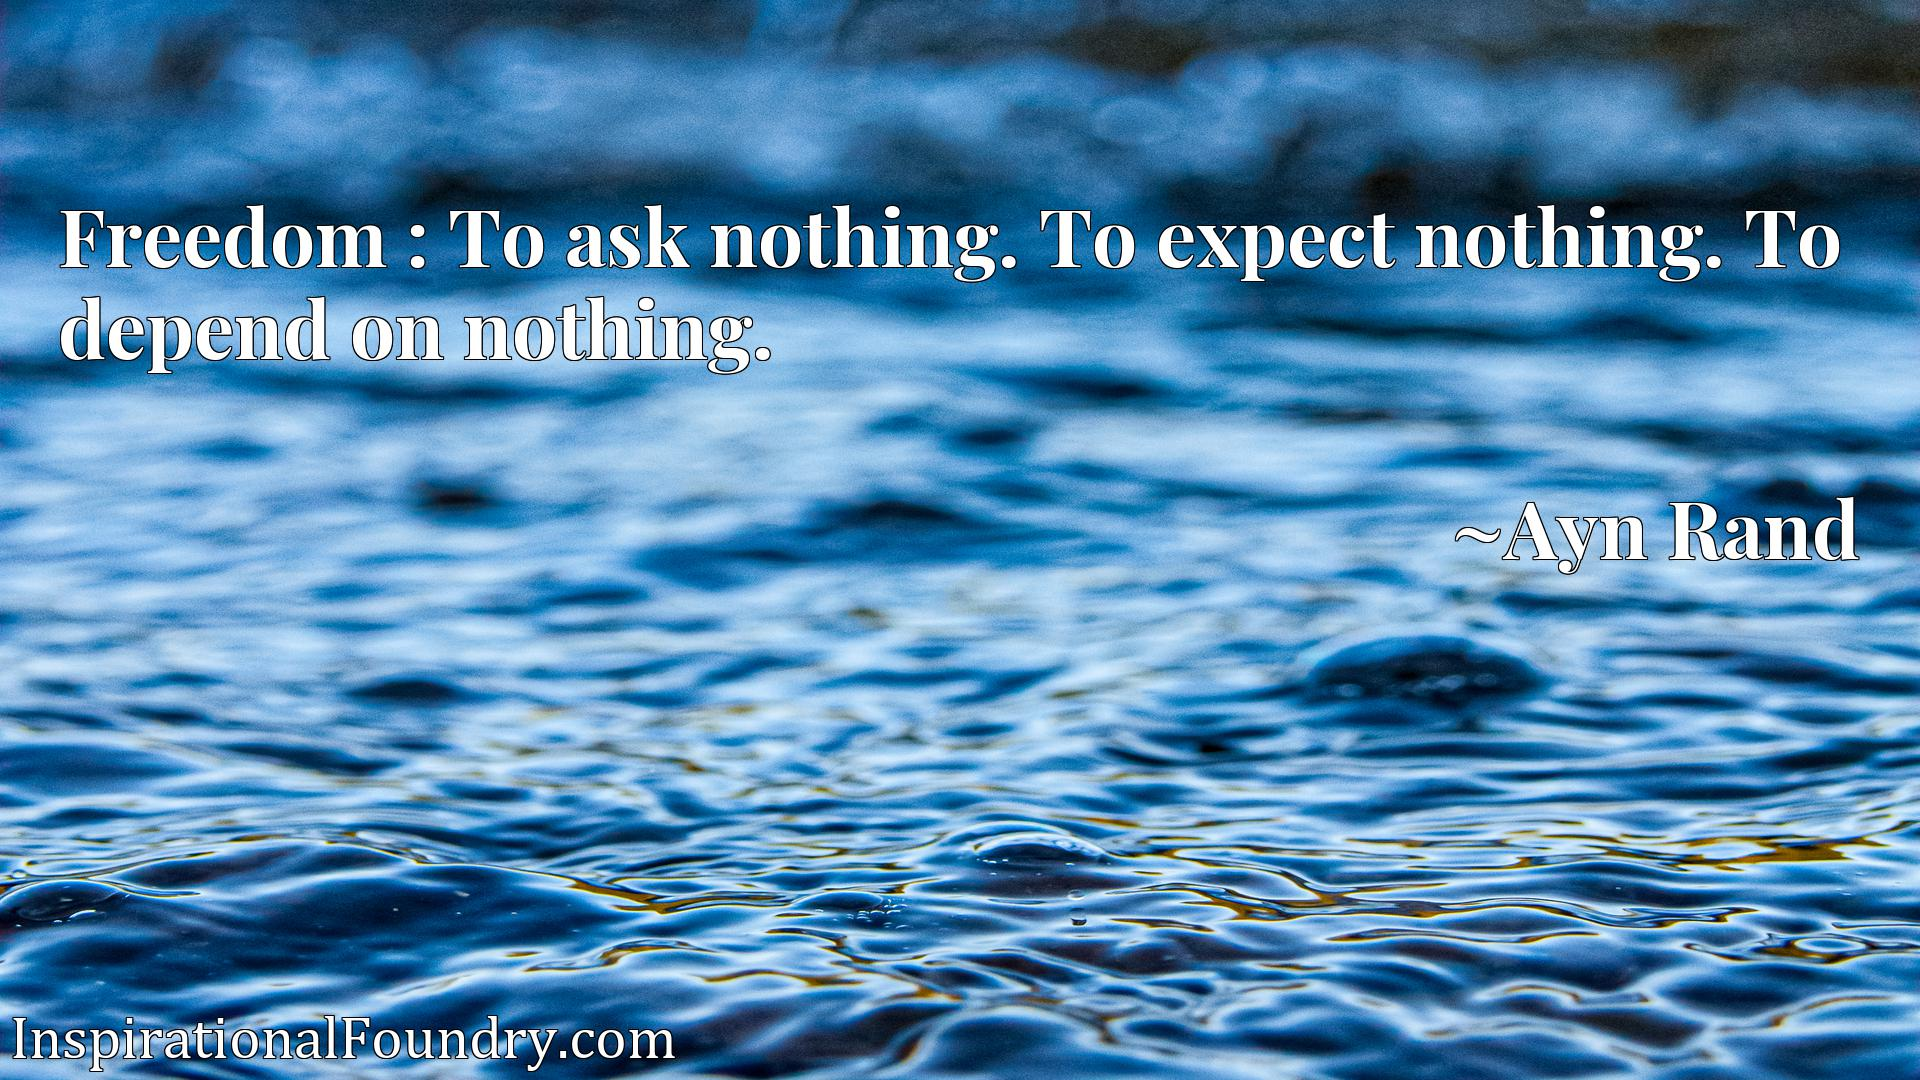 Freedom : To ask nothing. To expect nothing. To depend on nothing.